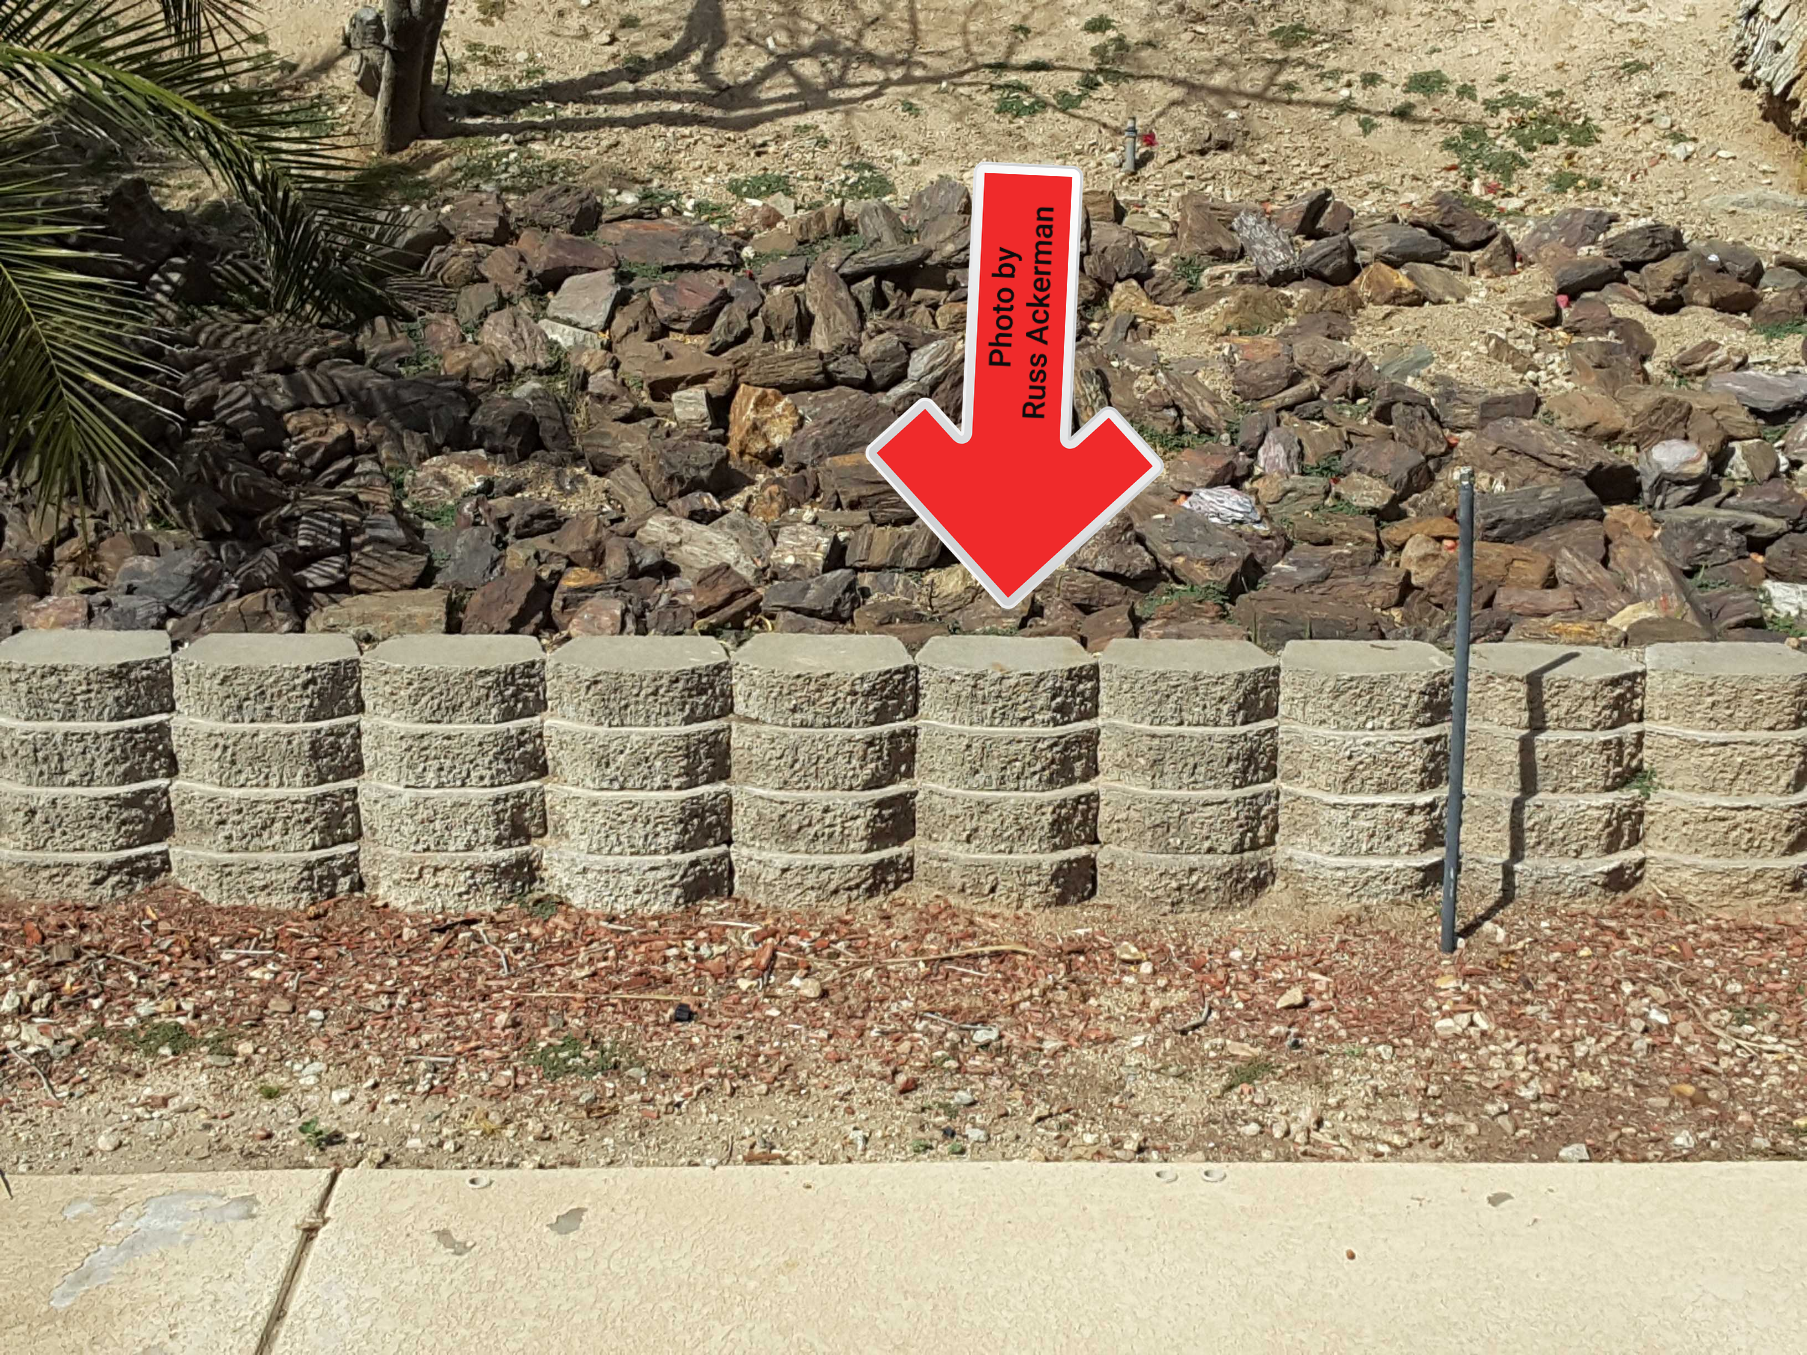 A poorly constructed retaining wall with the blocks aligned vertically rather than staggered will likely fail sooner than expected.